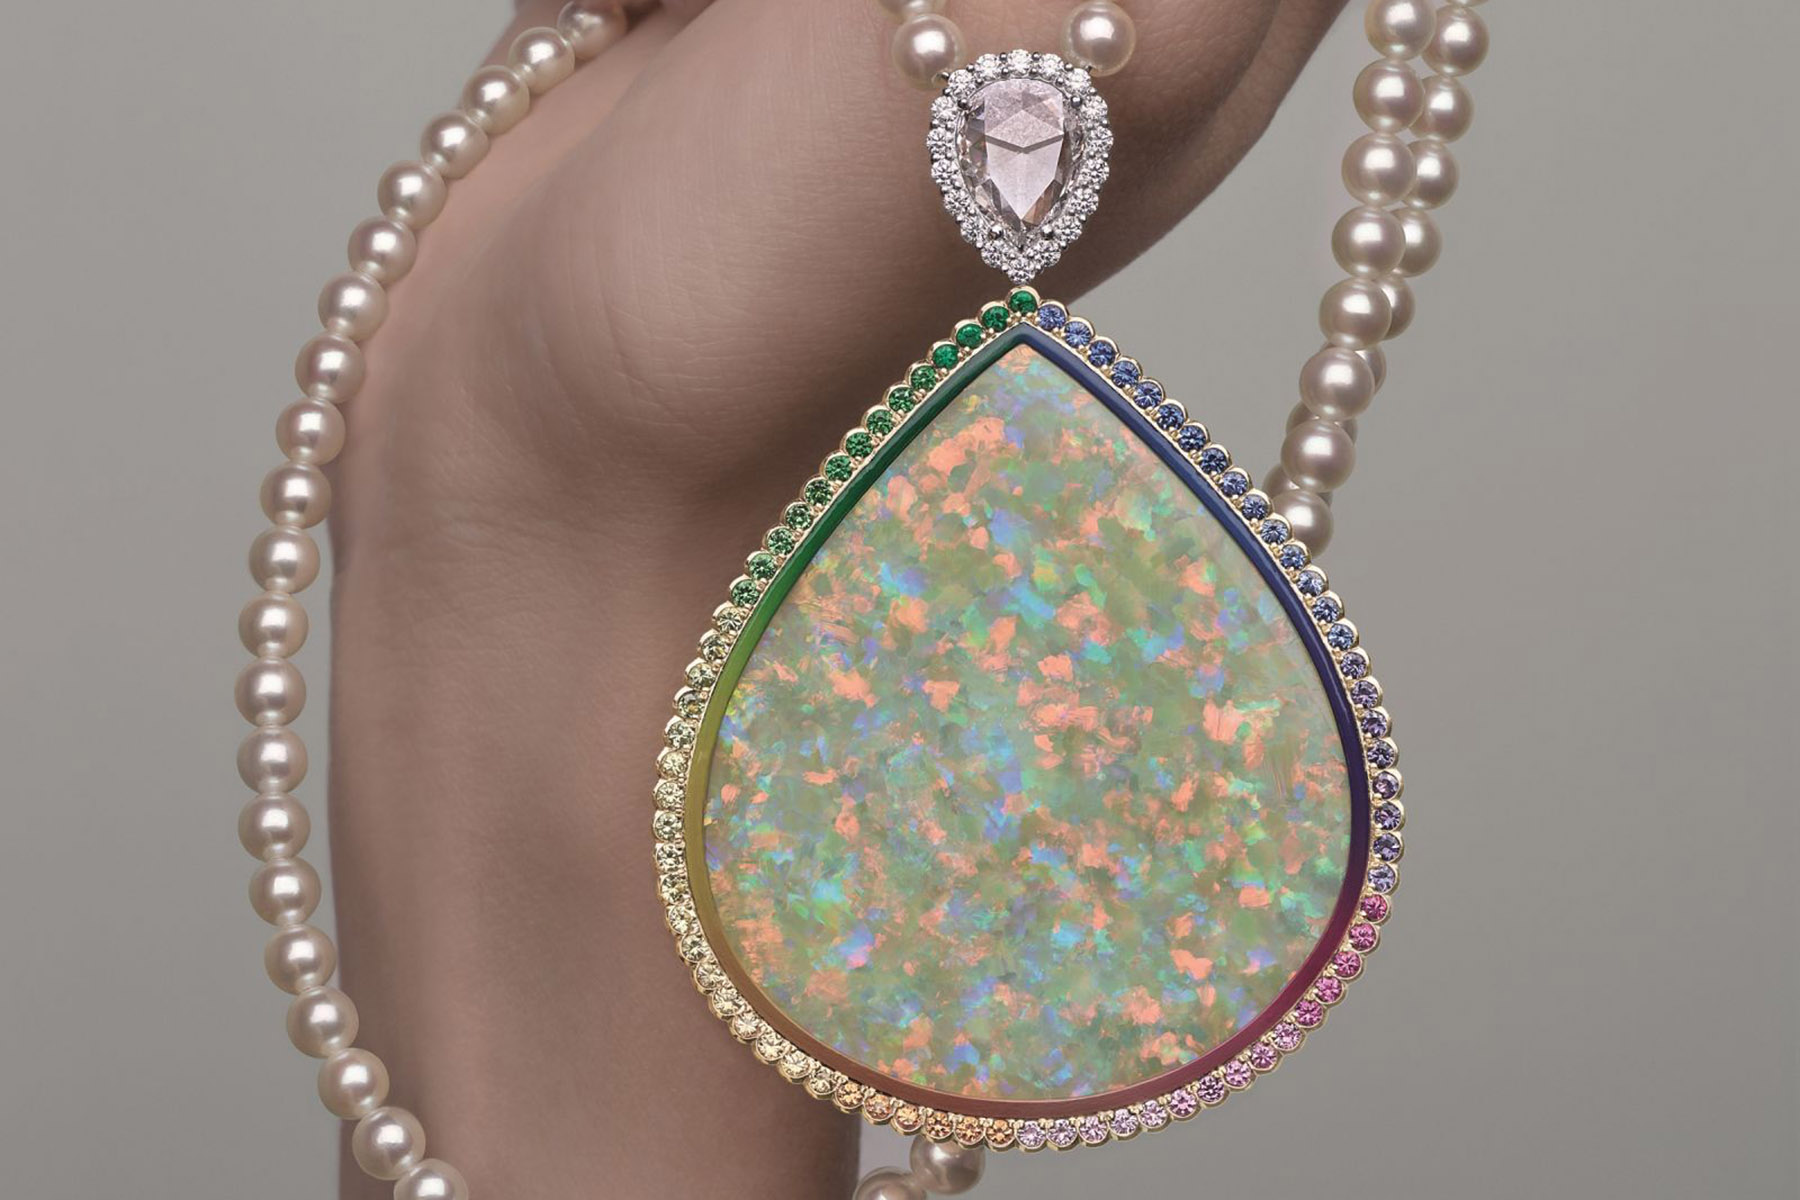 6 New High Jewellery Collections That